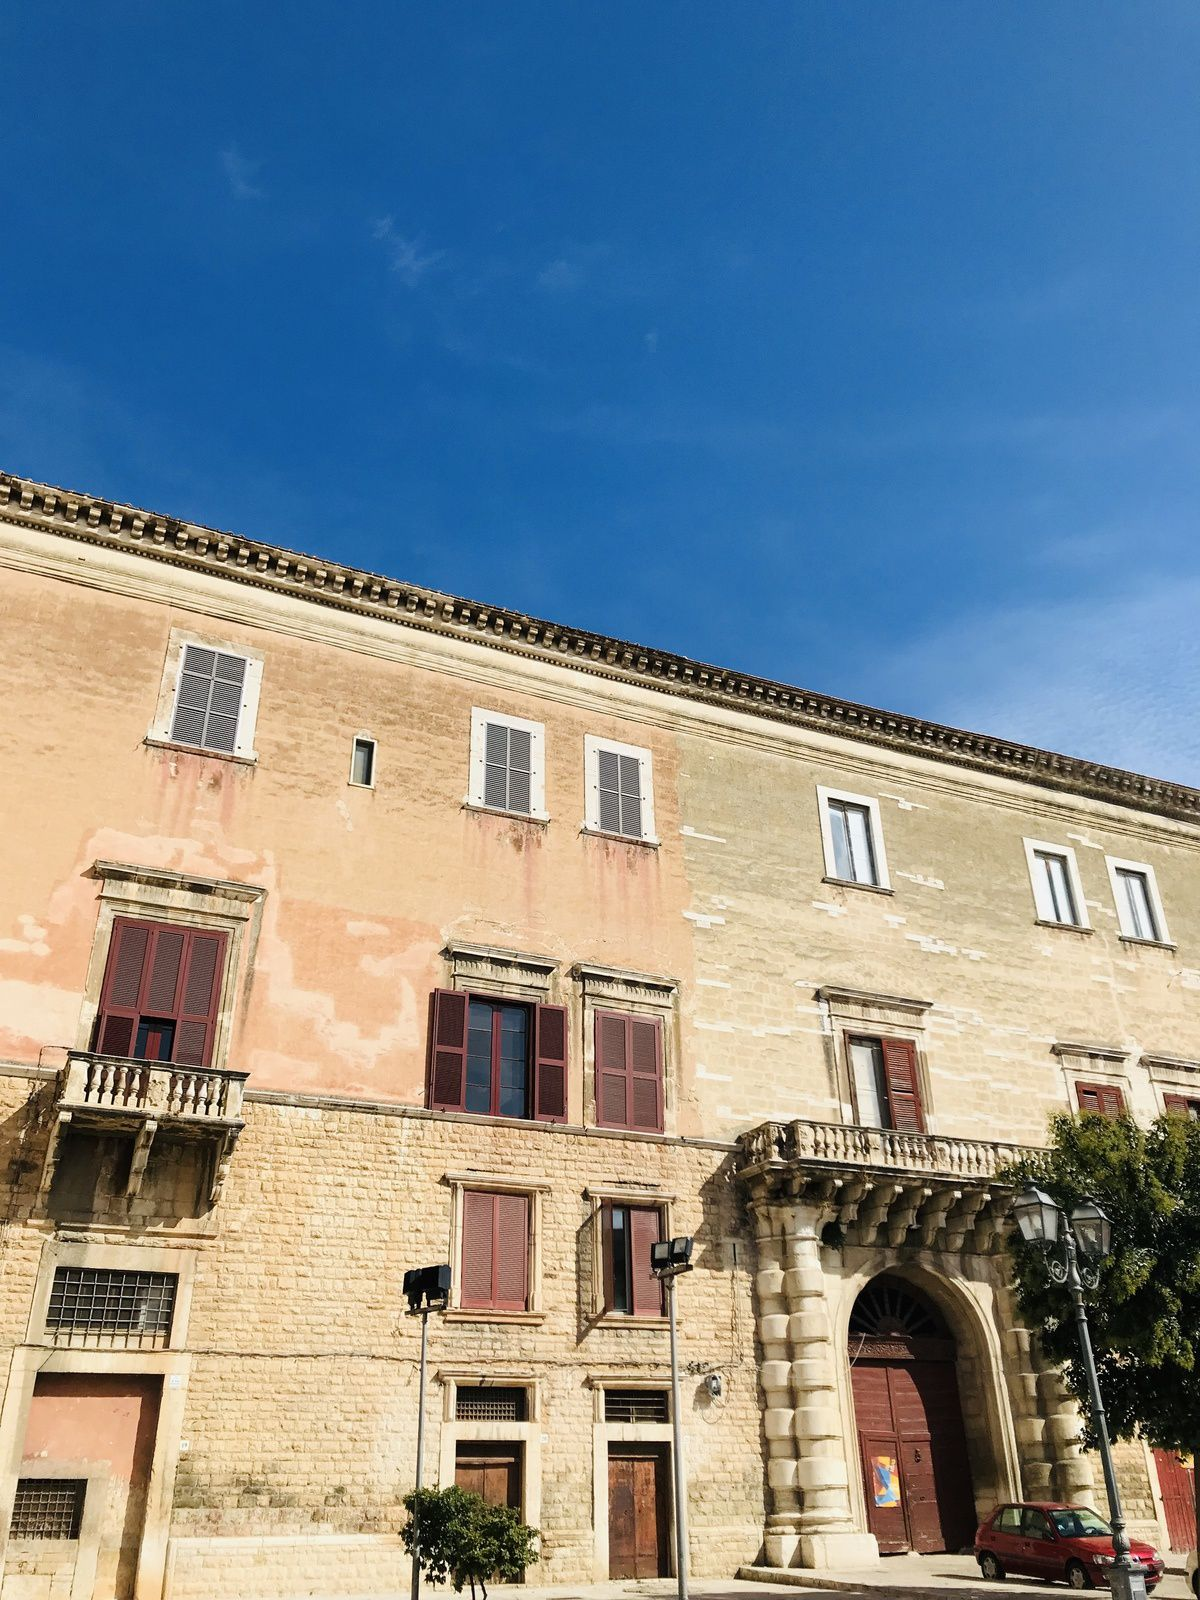 Palazzo Ducale.